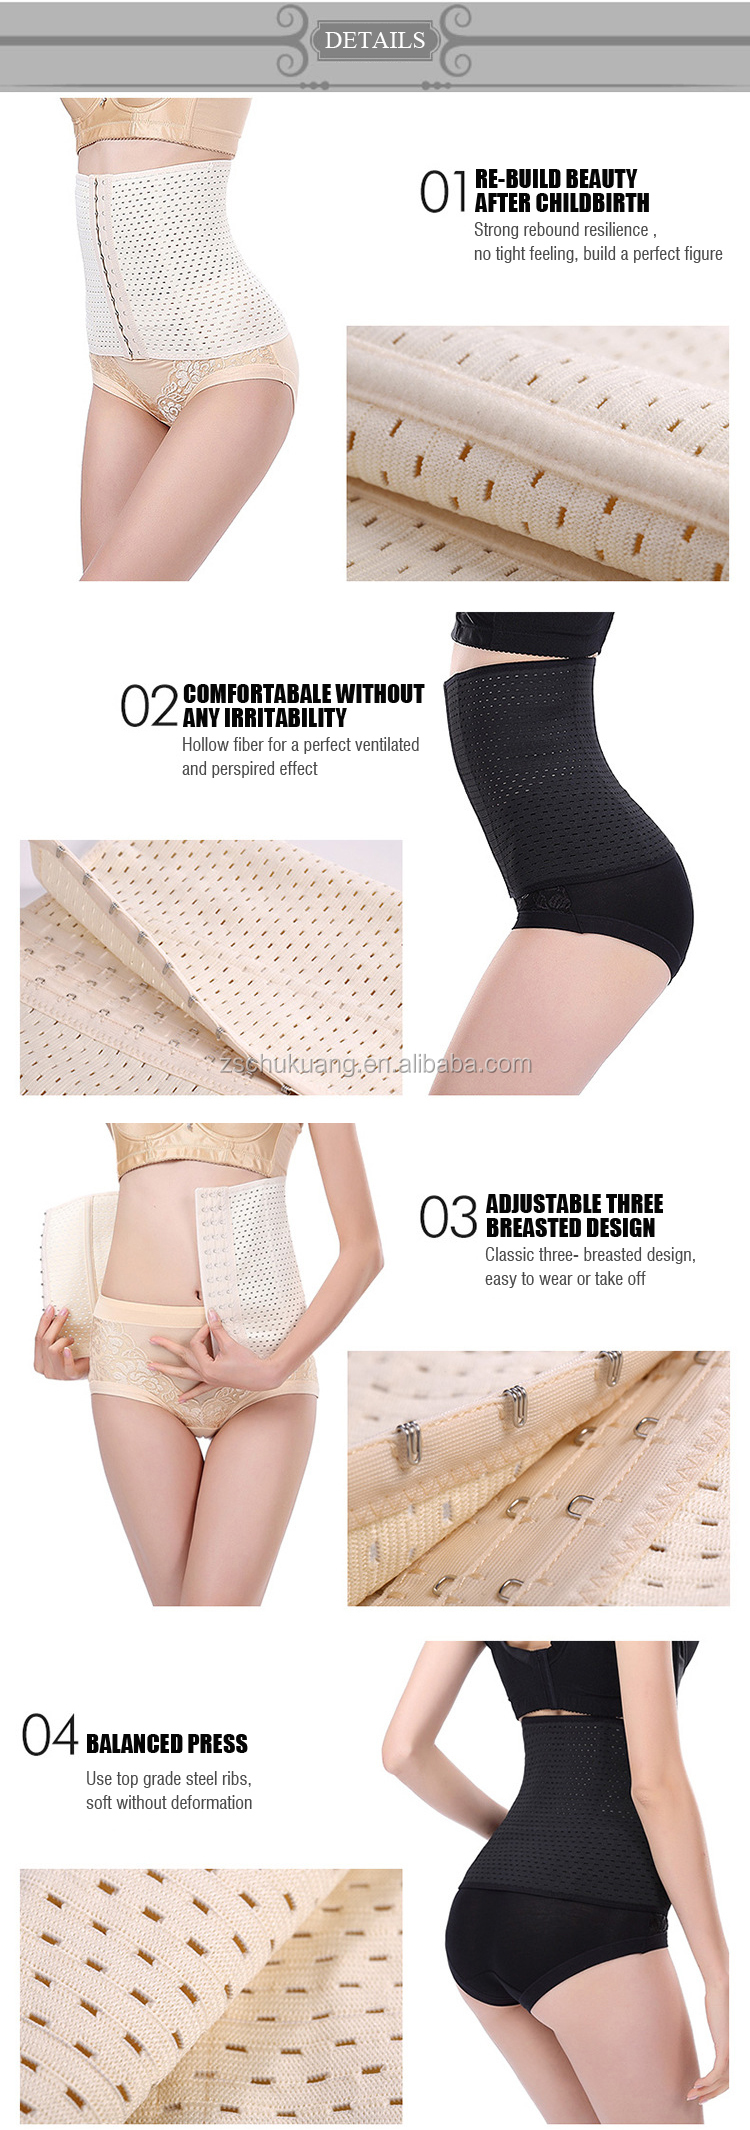 Wholesale Waist Trainer Belt Body Shaper Belly Wrap Trimmer Slimmer Compression waist clincher